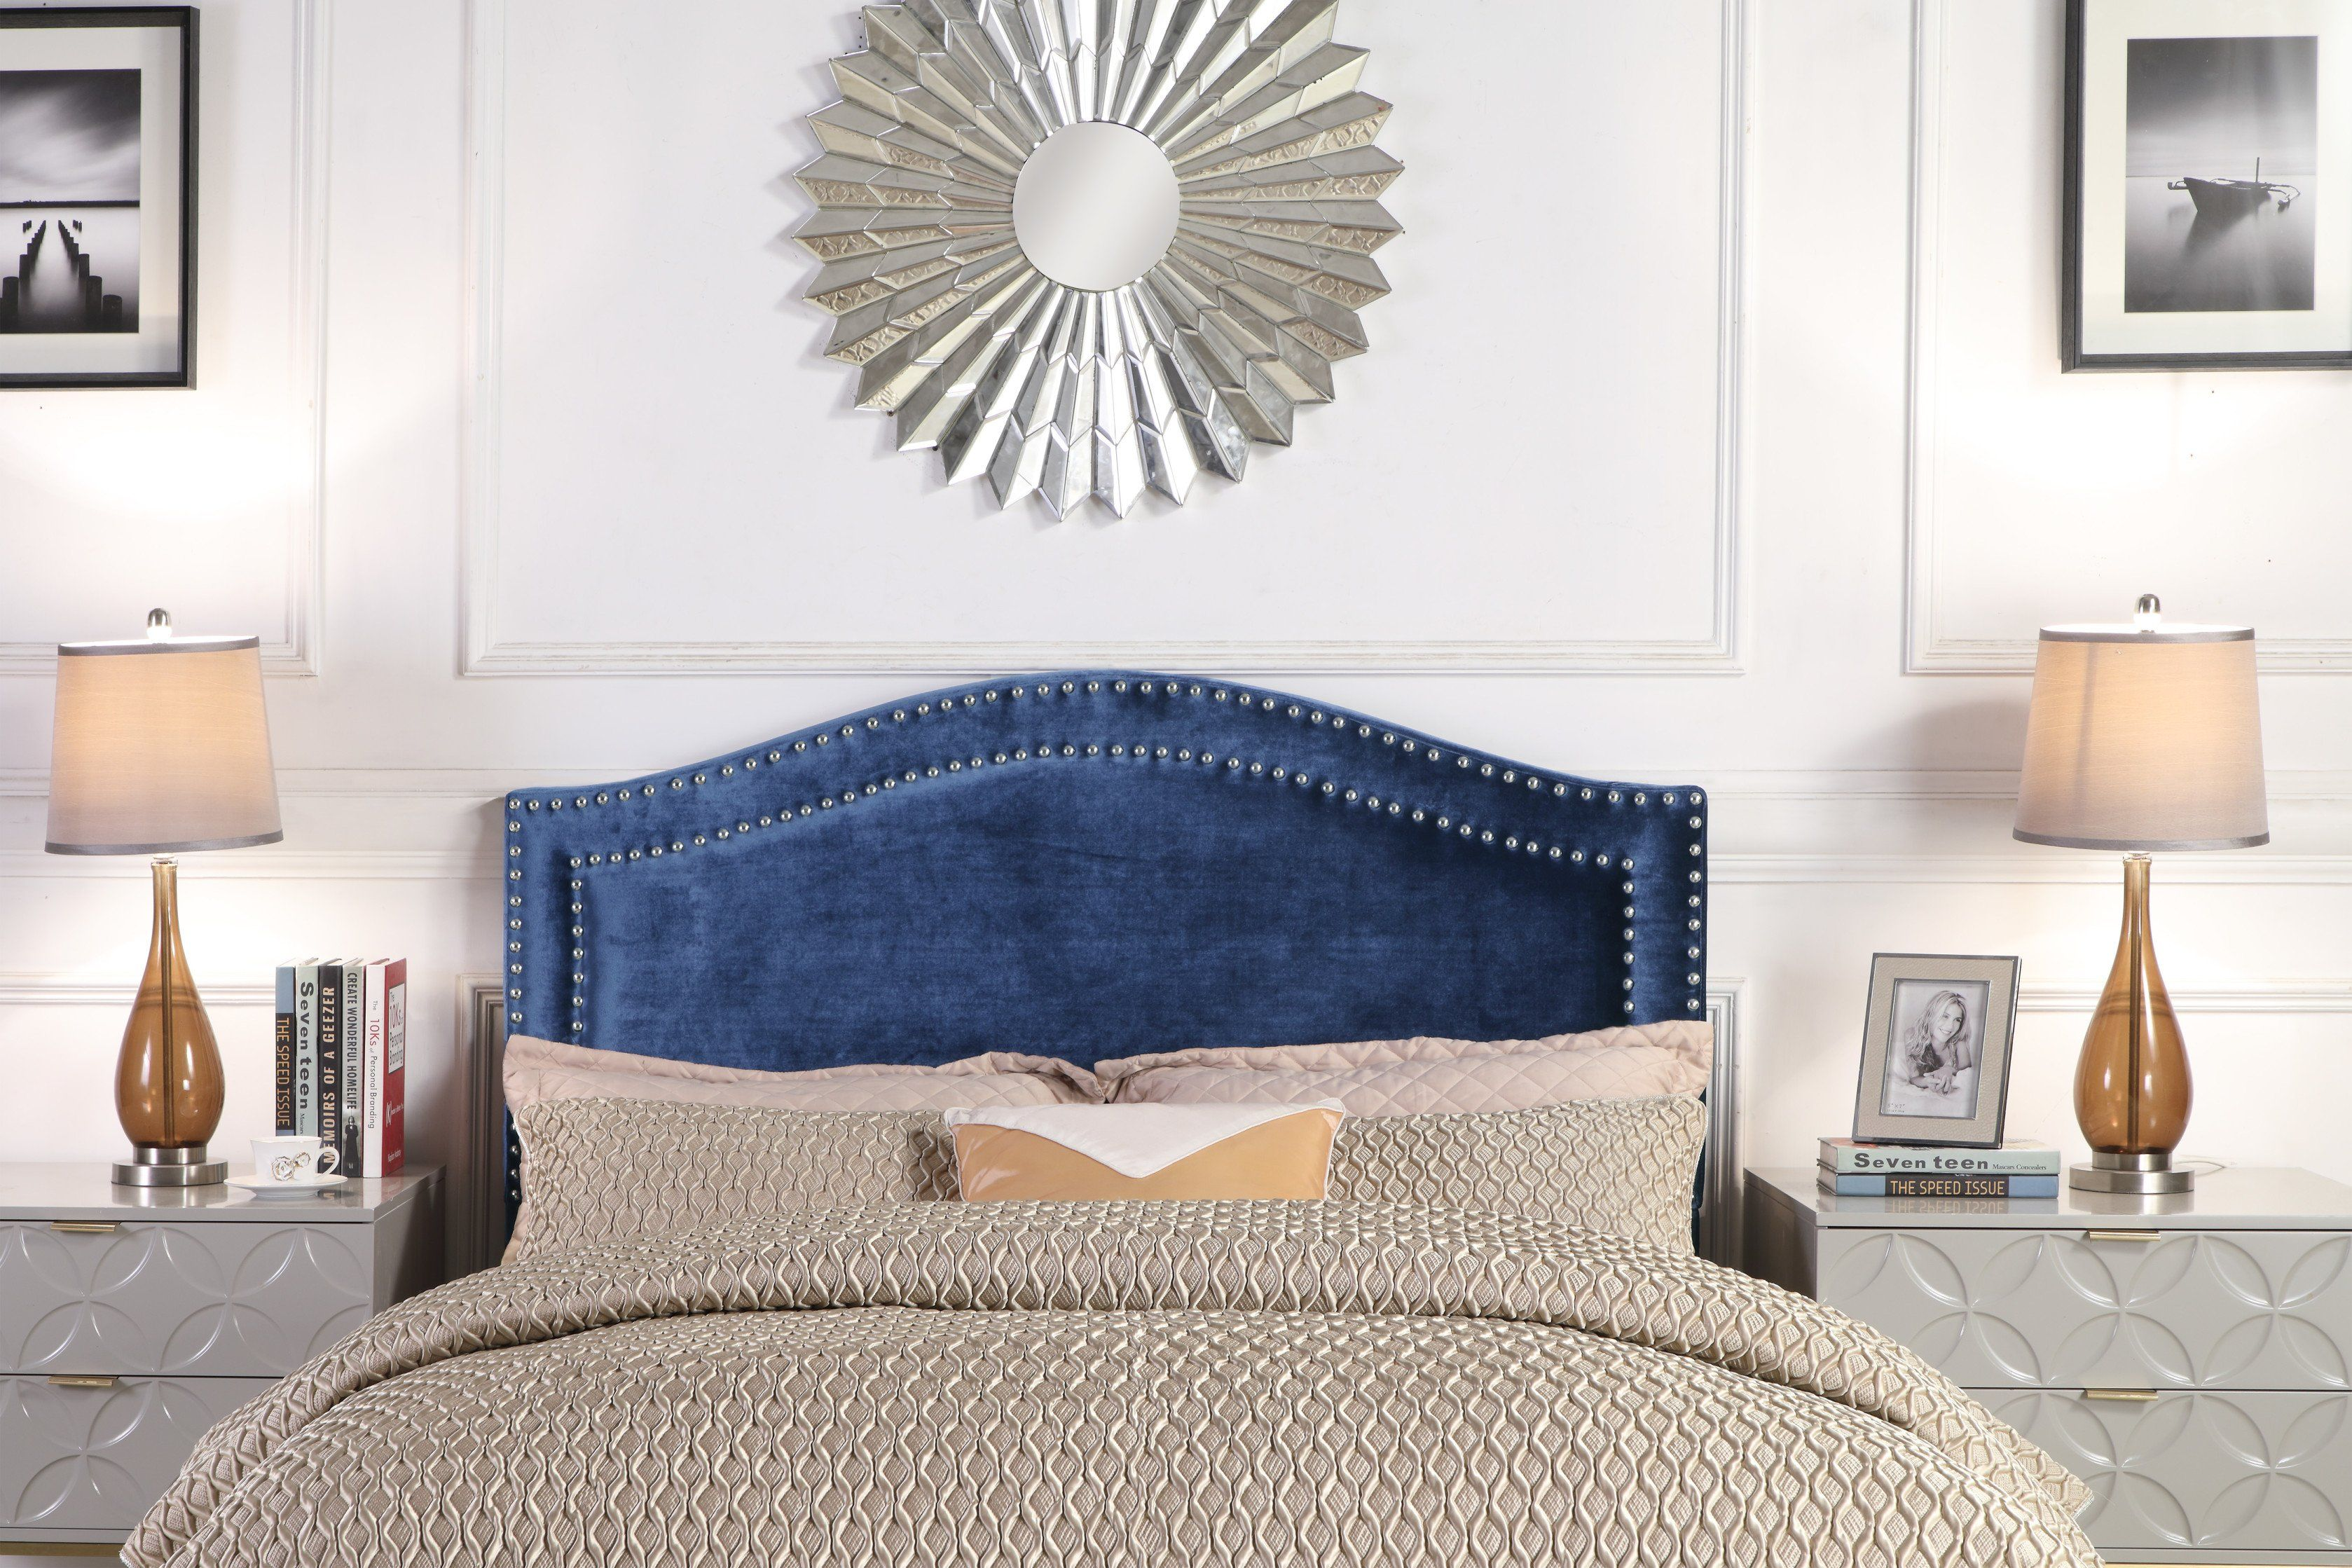 Iconic home tal headboard velvet upholstered double row nailhead